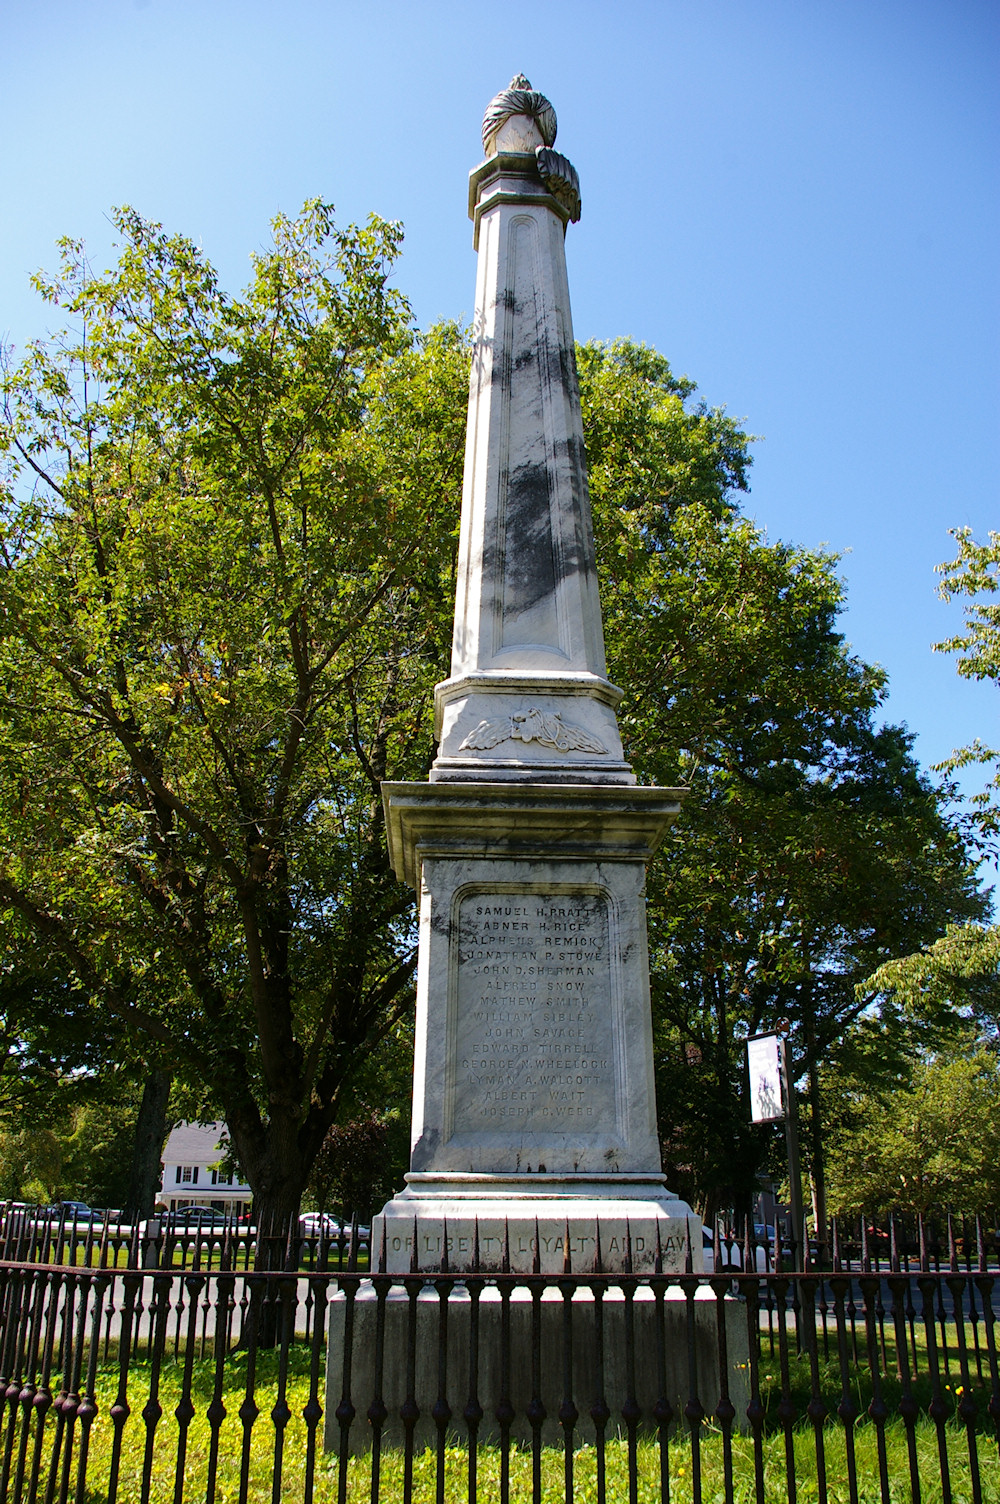 IMGP6292.jpg - Civil War Monument